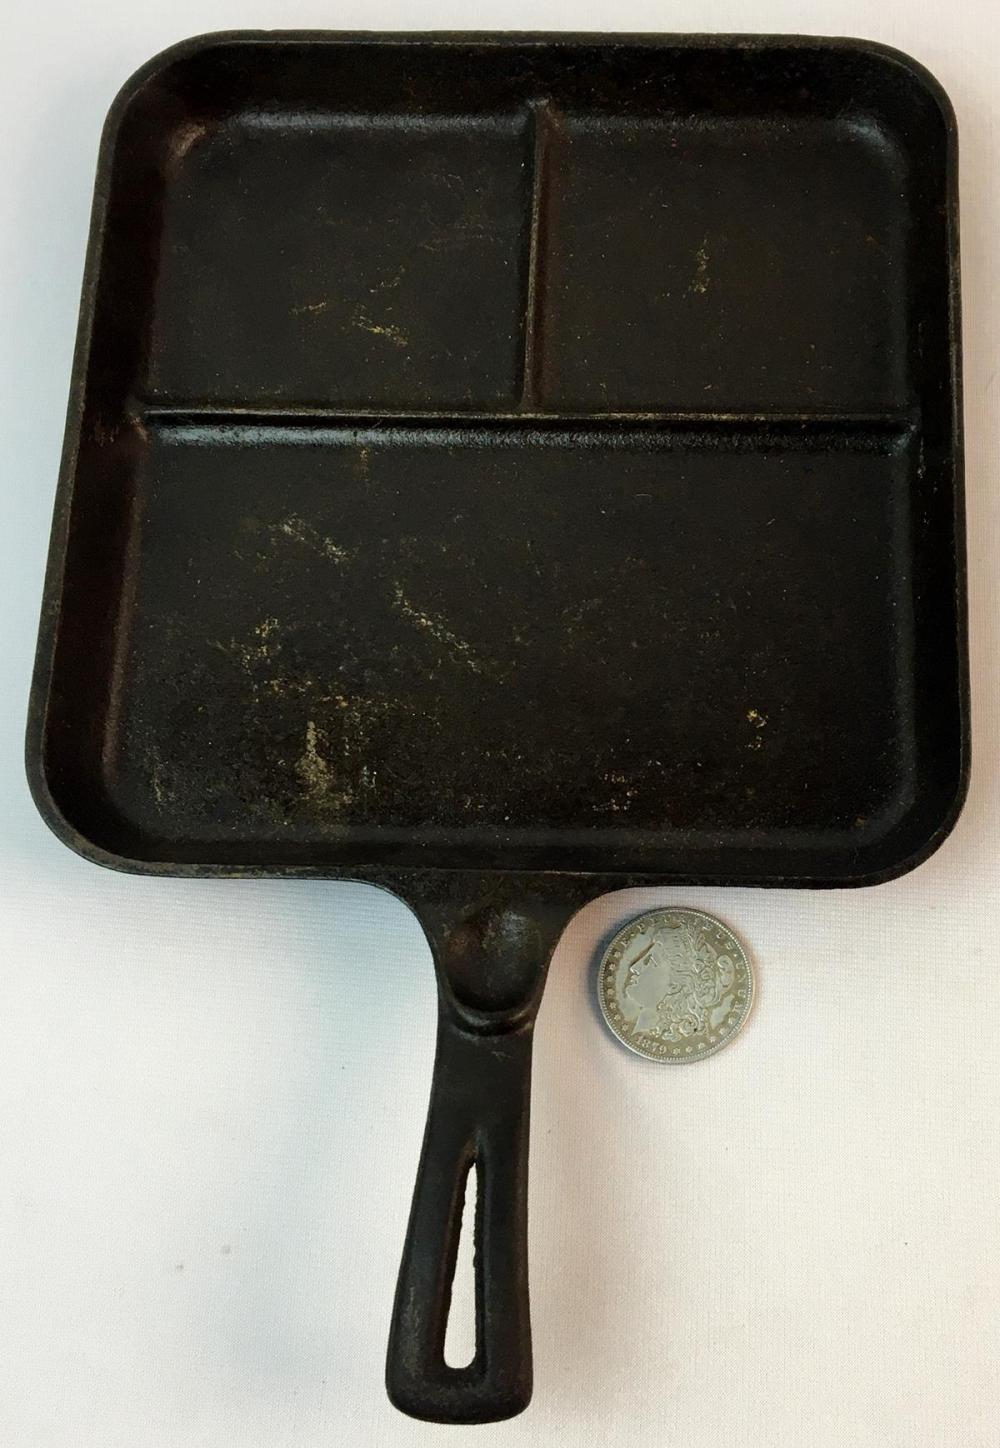 Vintage Wagner Ware Sidney -O- Bacon and Egg Breakfast Cast Iron 1101 C Skillet